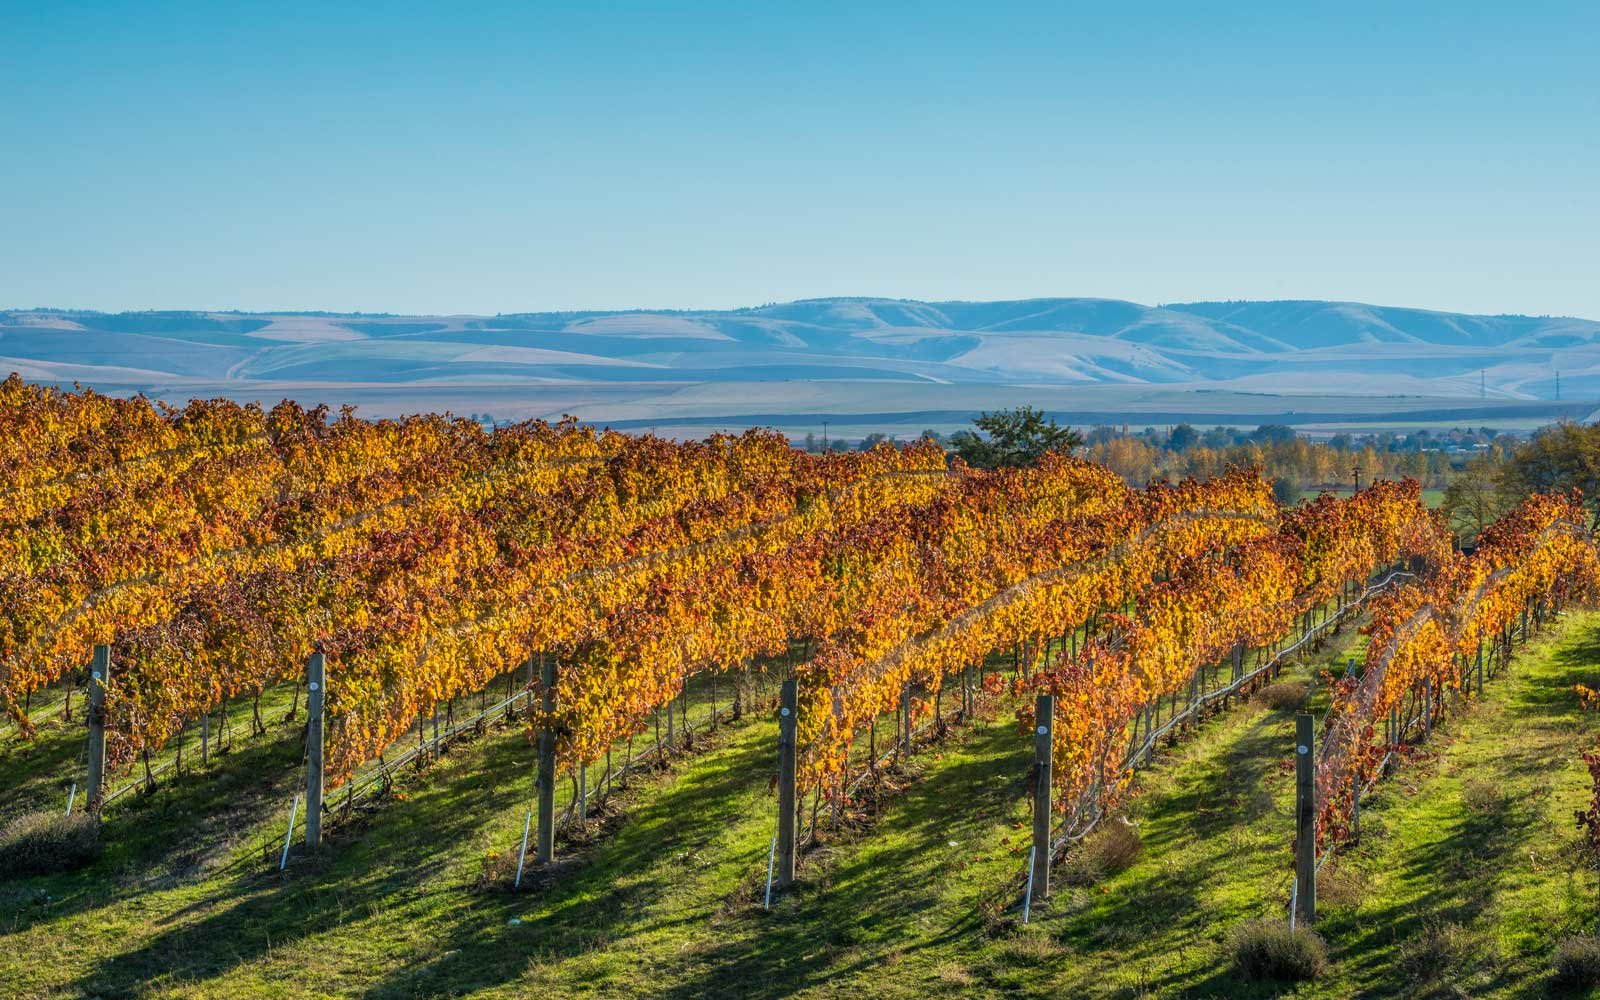 Grape vines in Walla Walla, Washington, looking toward the Blue Mountains